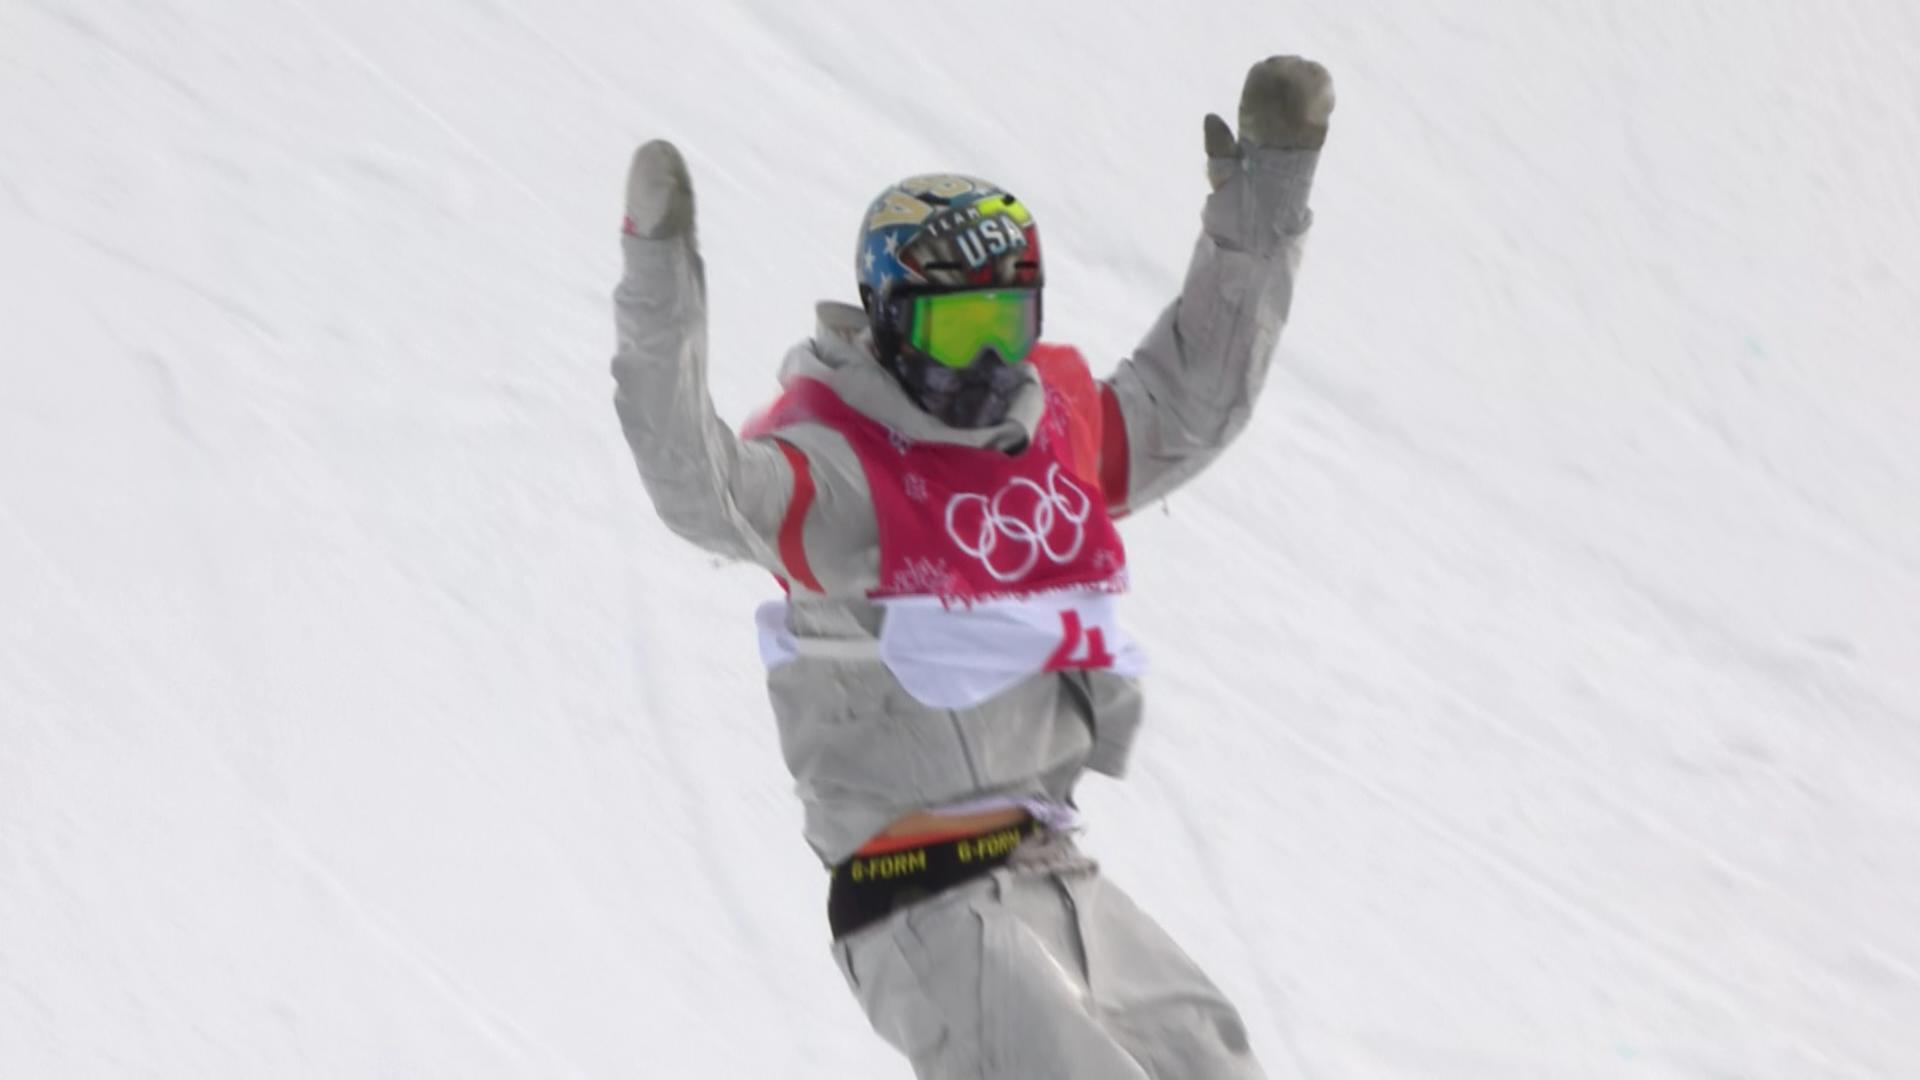 Snowboarding At The 2020 Olympic Winter Games.Pyeongchang Snowboard Results Videos